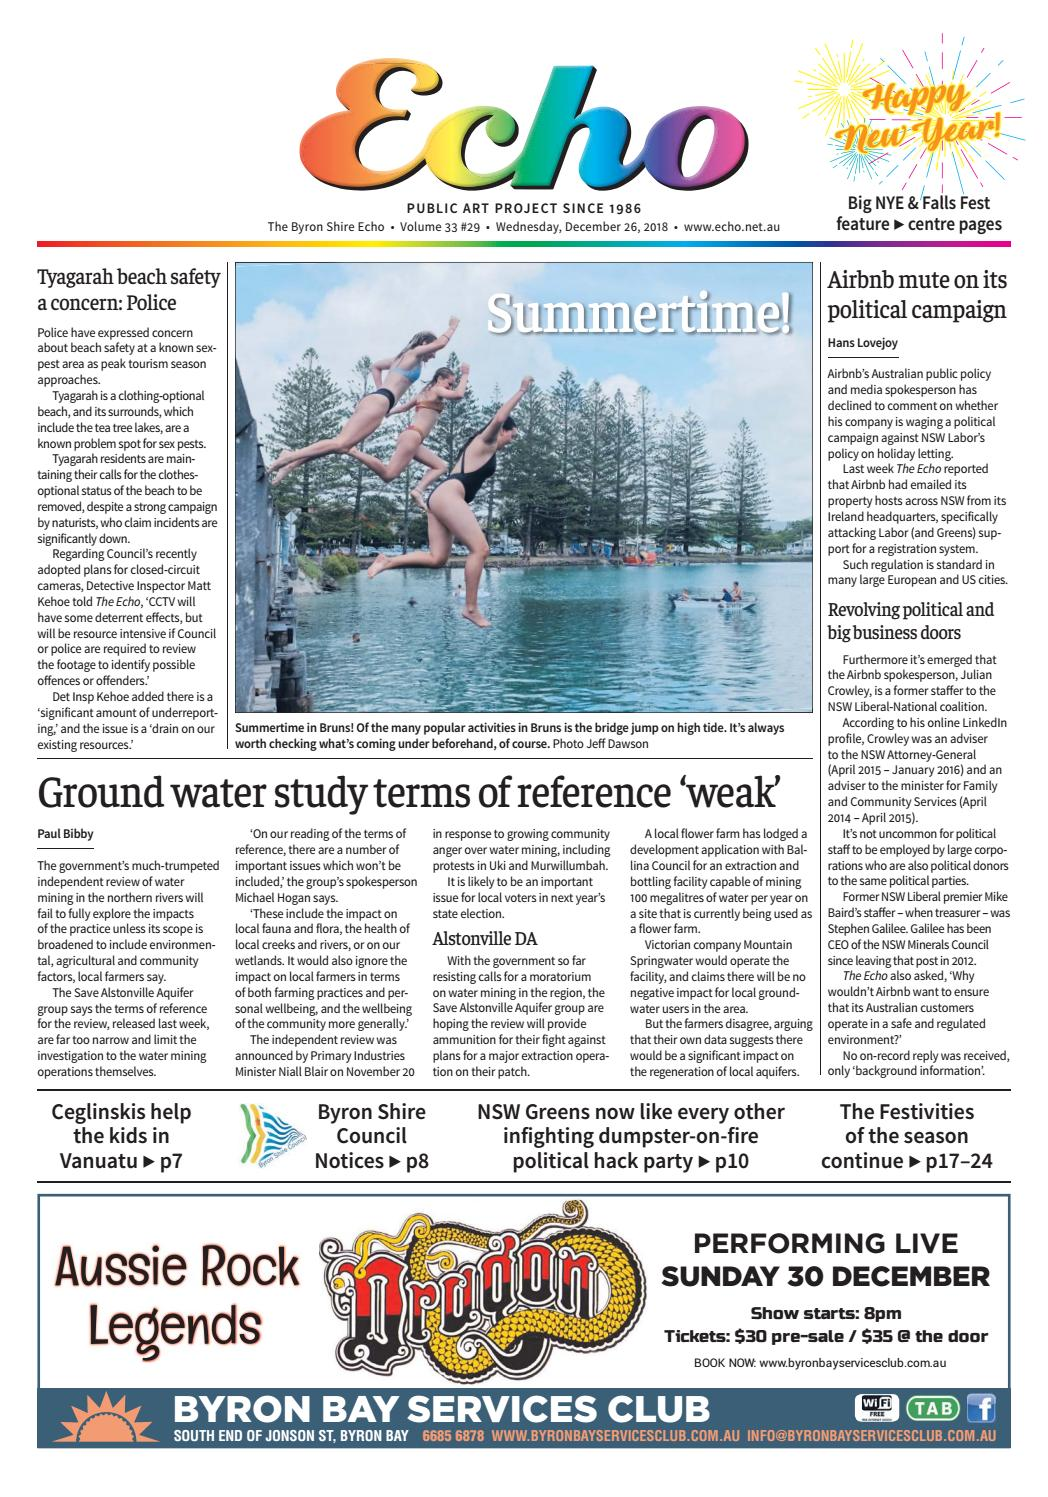 The Byron Shire Echo – Issue 33 29 – December 26, 2018 by